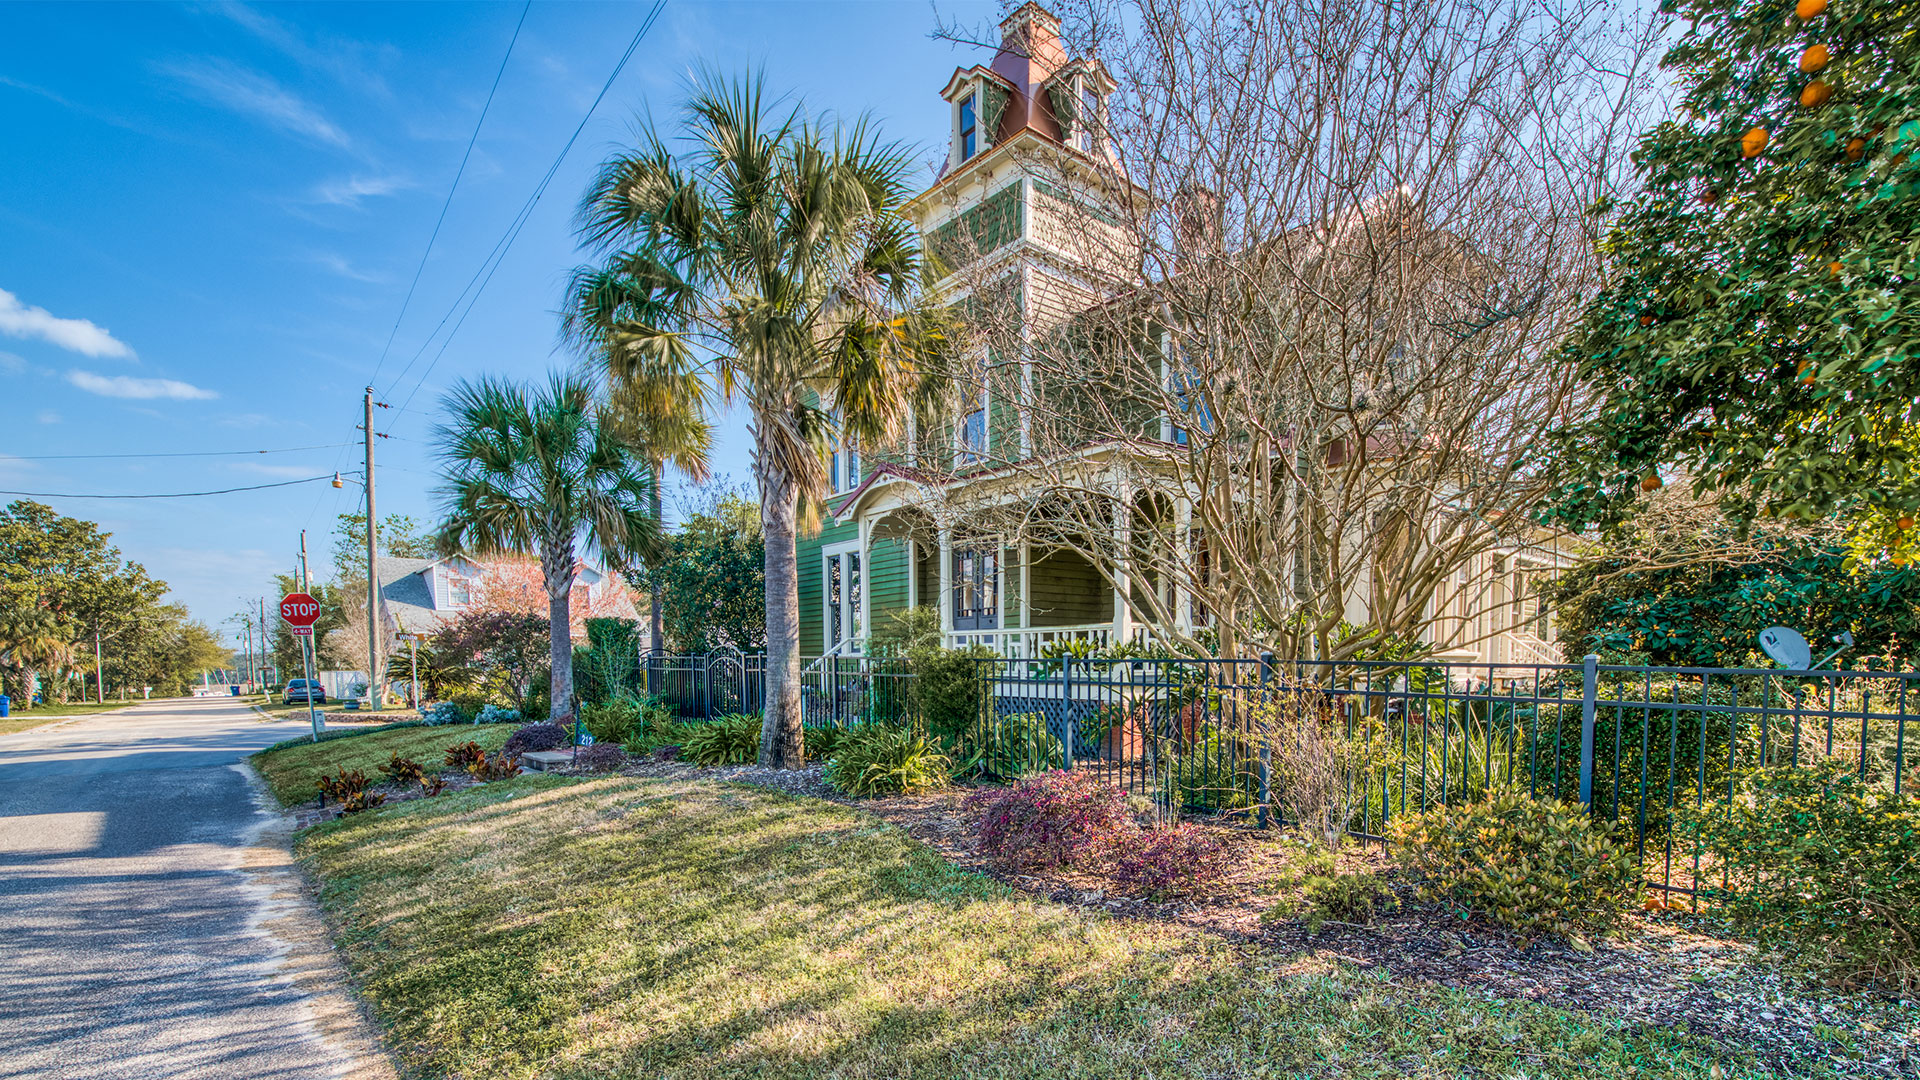 Pippi Longstocking House Fernandina Beach Exterior